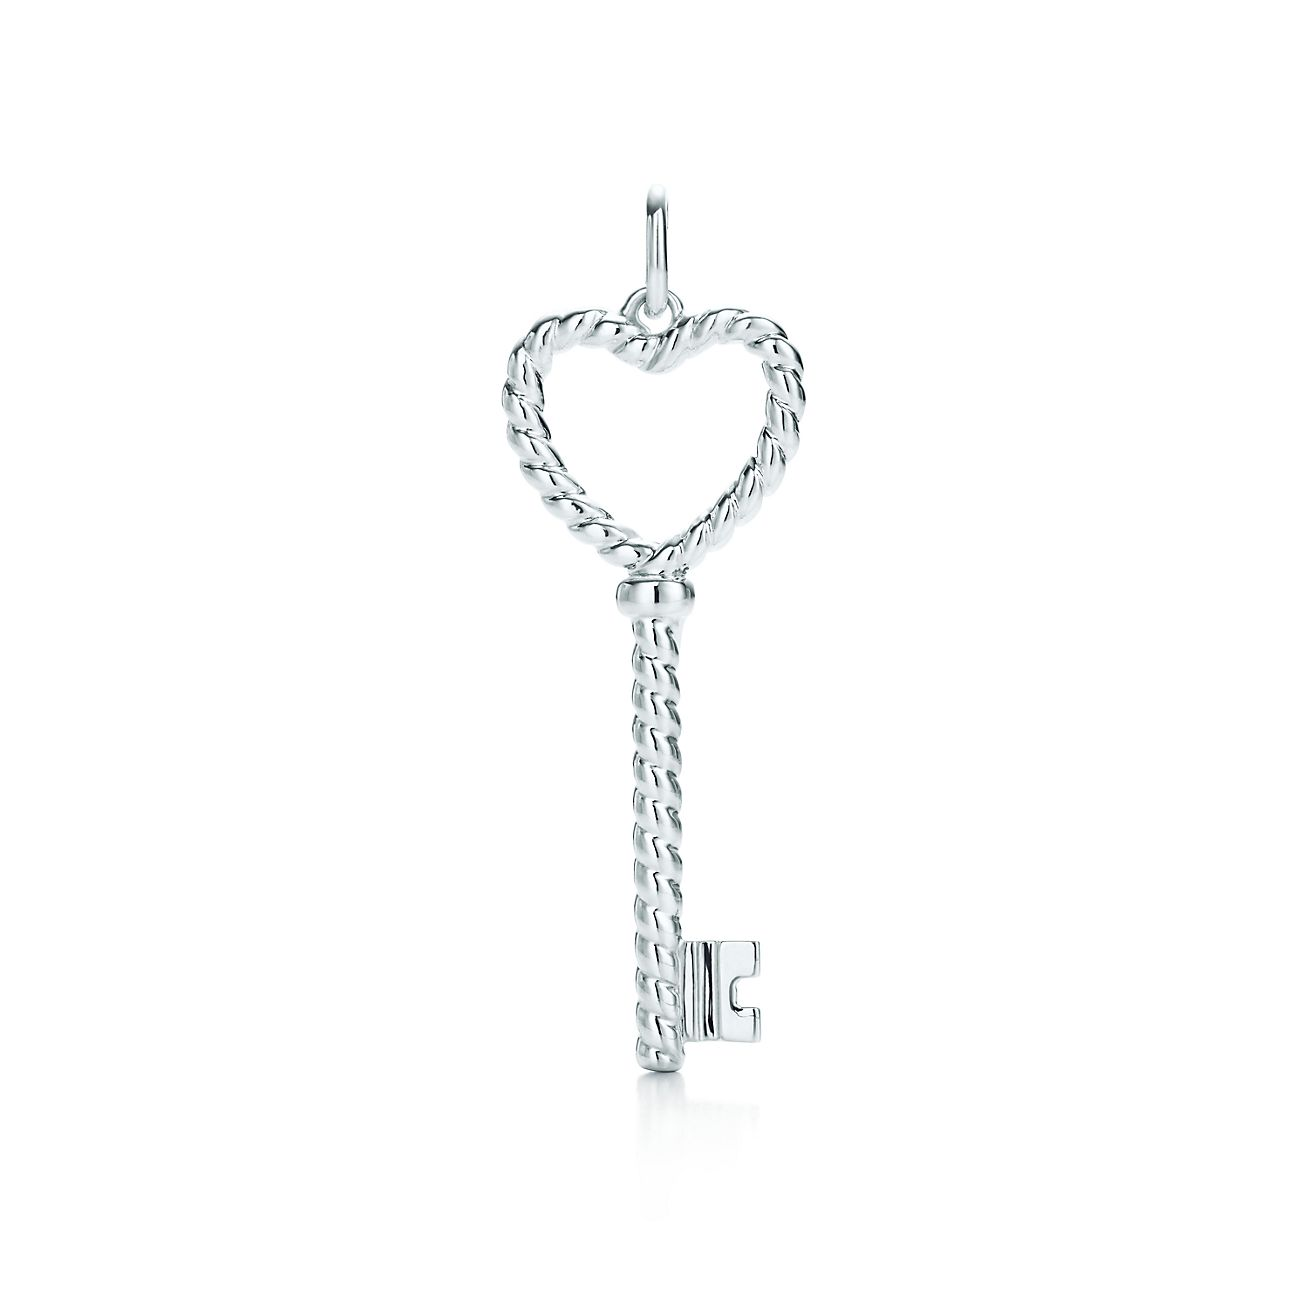 Explore Tiffany Silver Jewelry Tiffany Keys Twist Heart Key Pendant 26741297 Discount Tiffany Keys